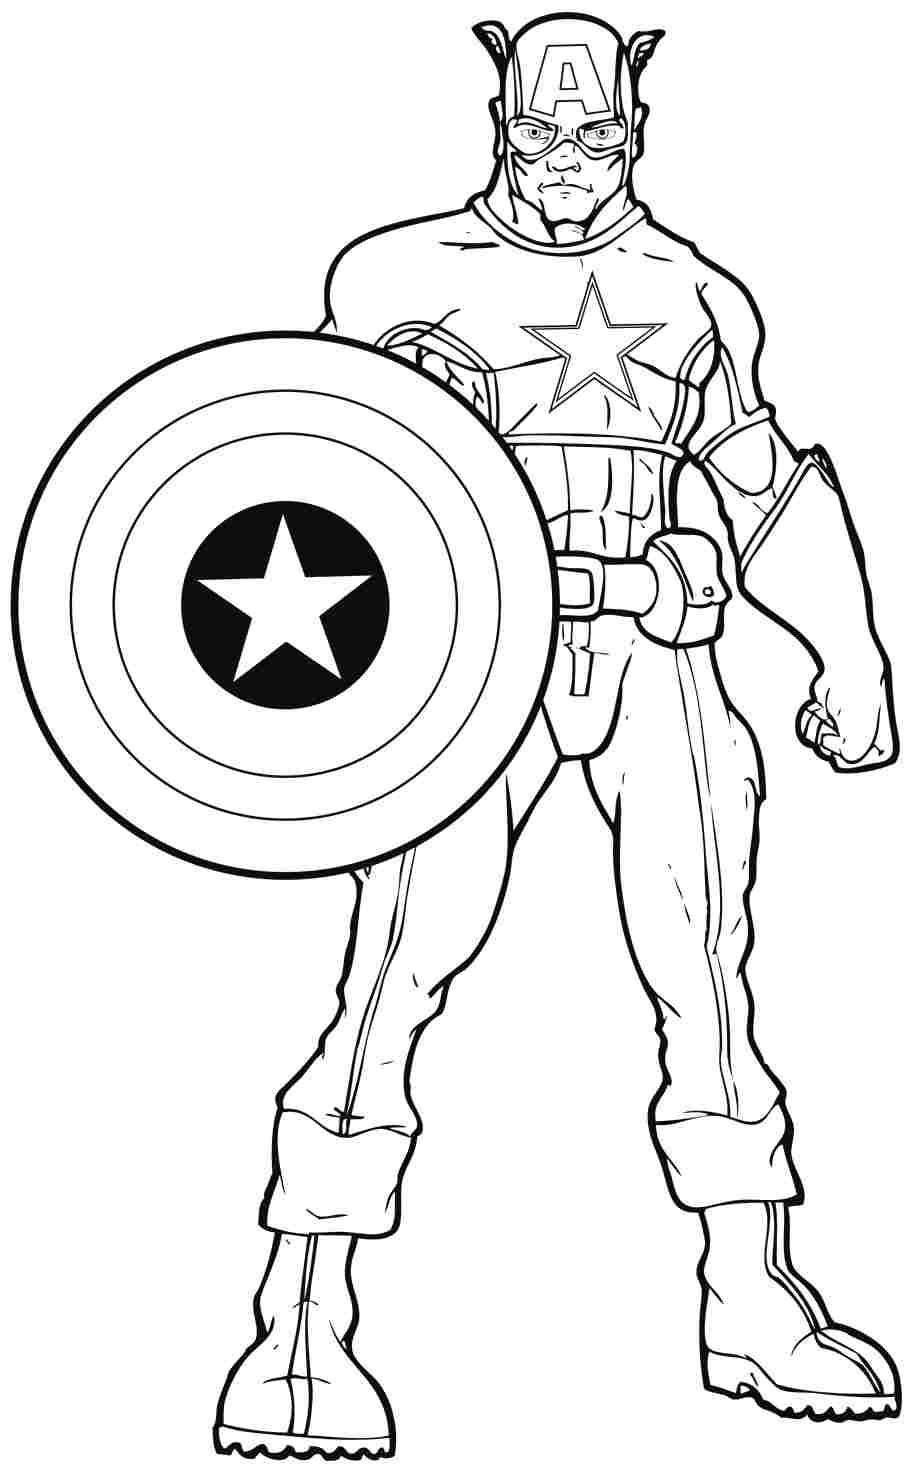 coloring pages superheroes superhero coloring pages pages coloring superheroes